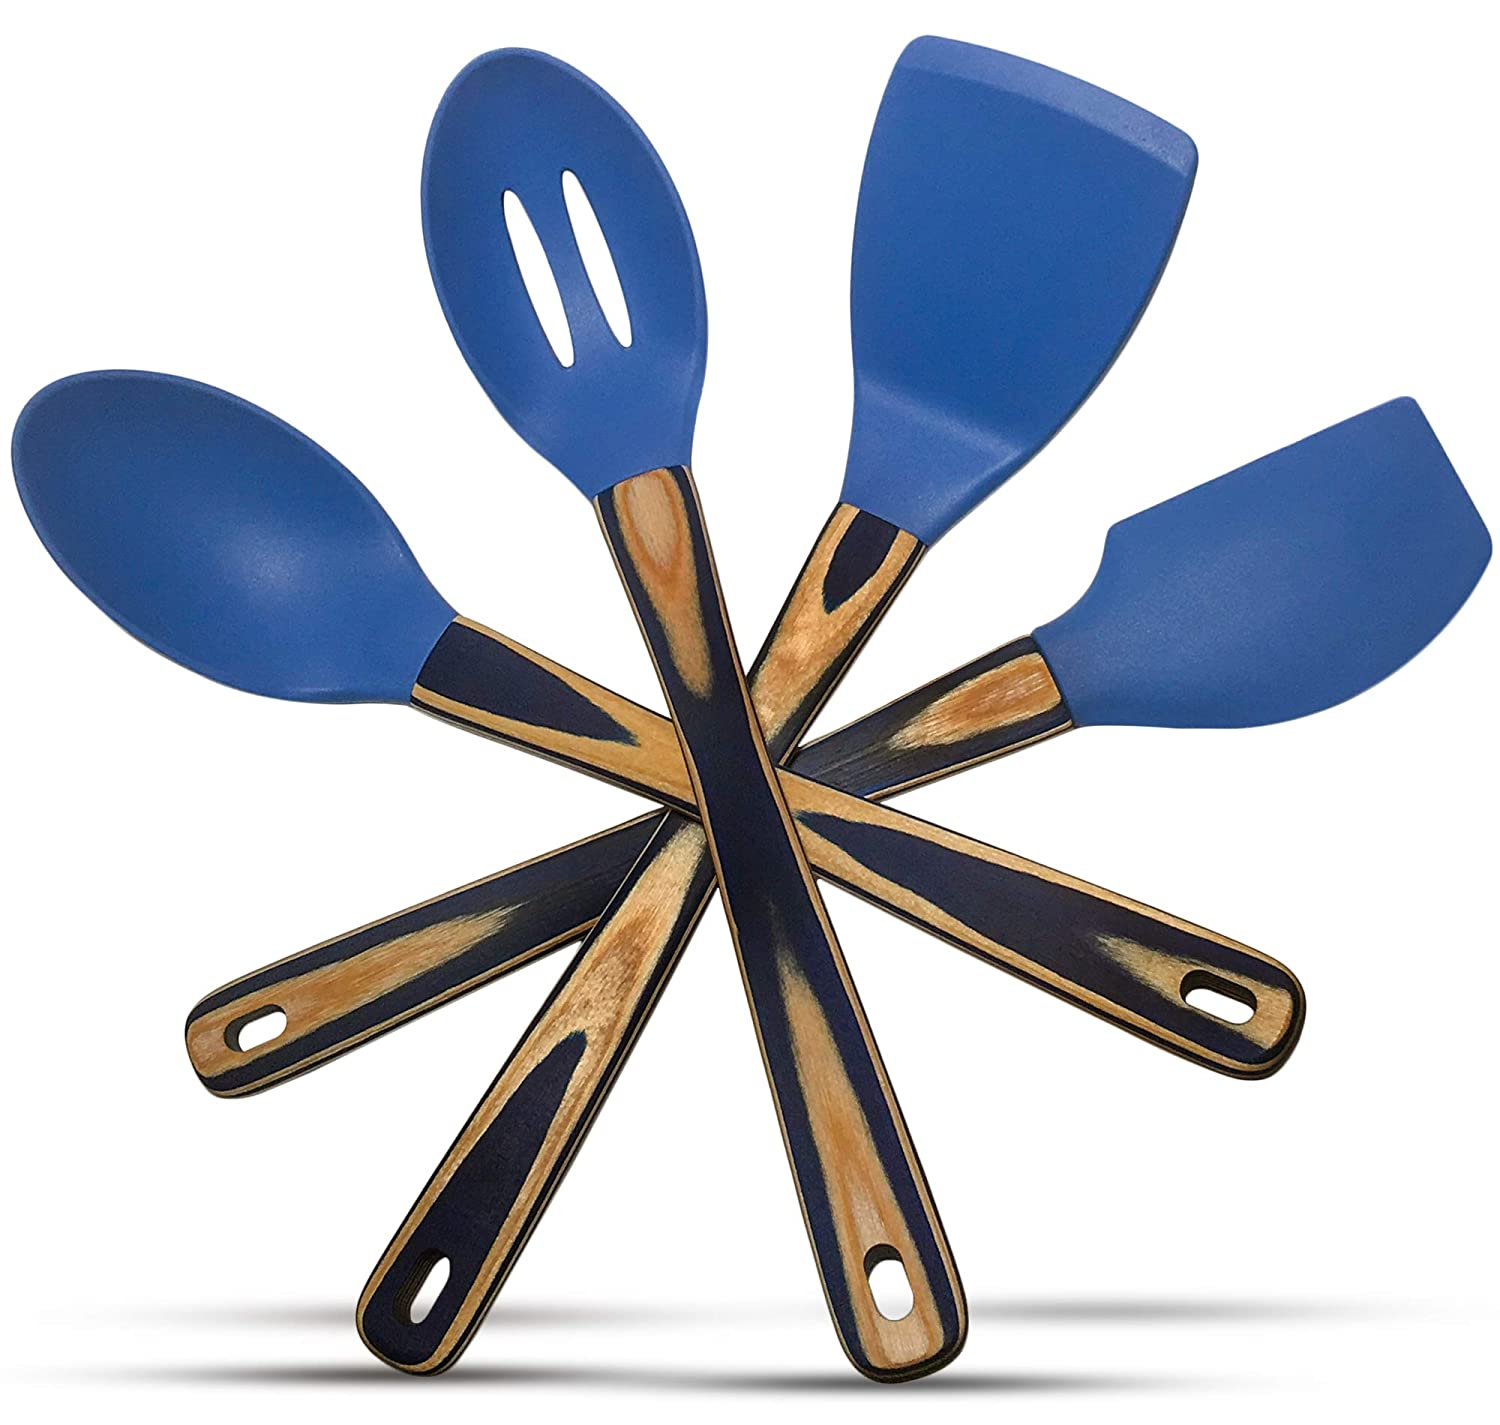 Silicone Spatulas and Cooking Spoons, Kitchen Utensils Gift Box Set of 4 with Pakkawood Handles in Blue Dazzle - Kitchen Tools and Gadgets by Kitchen Charisma